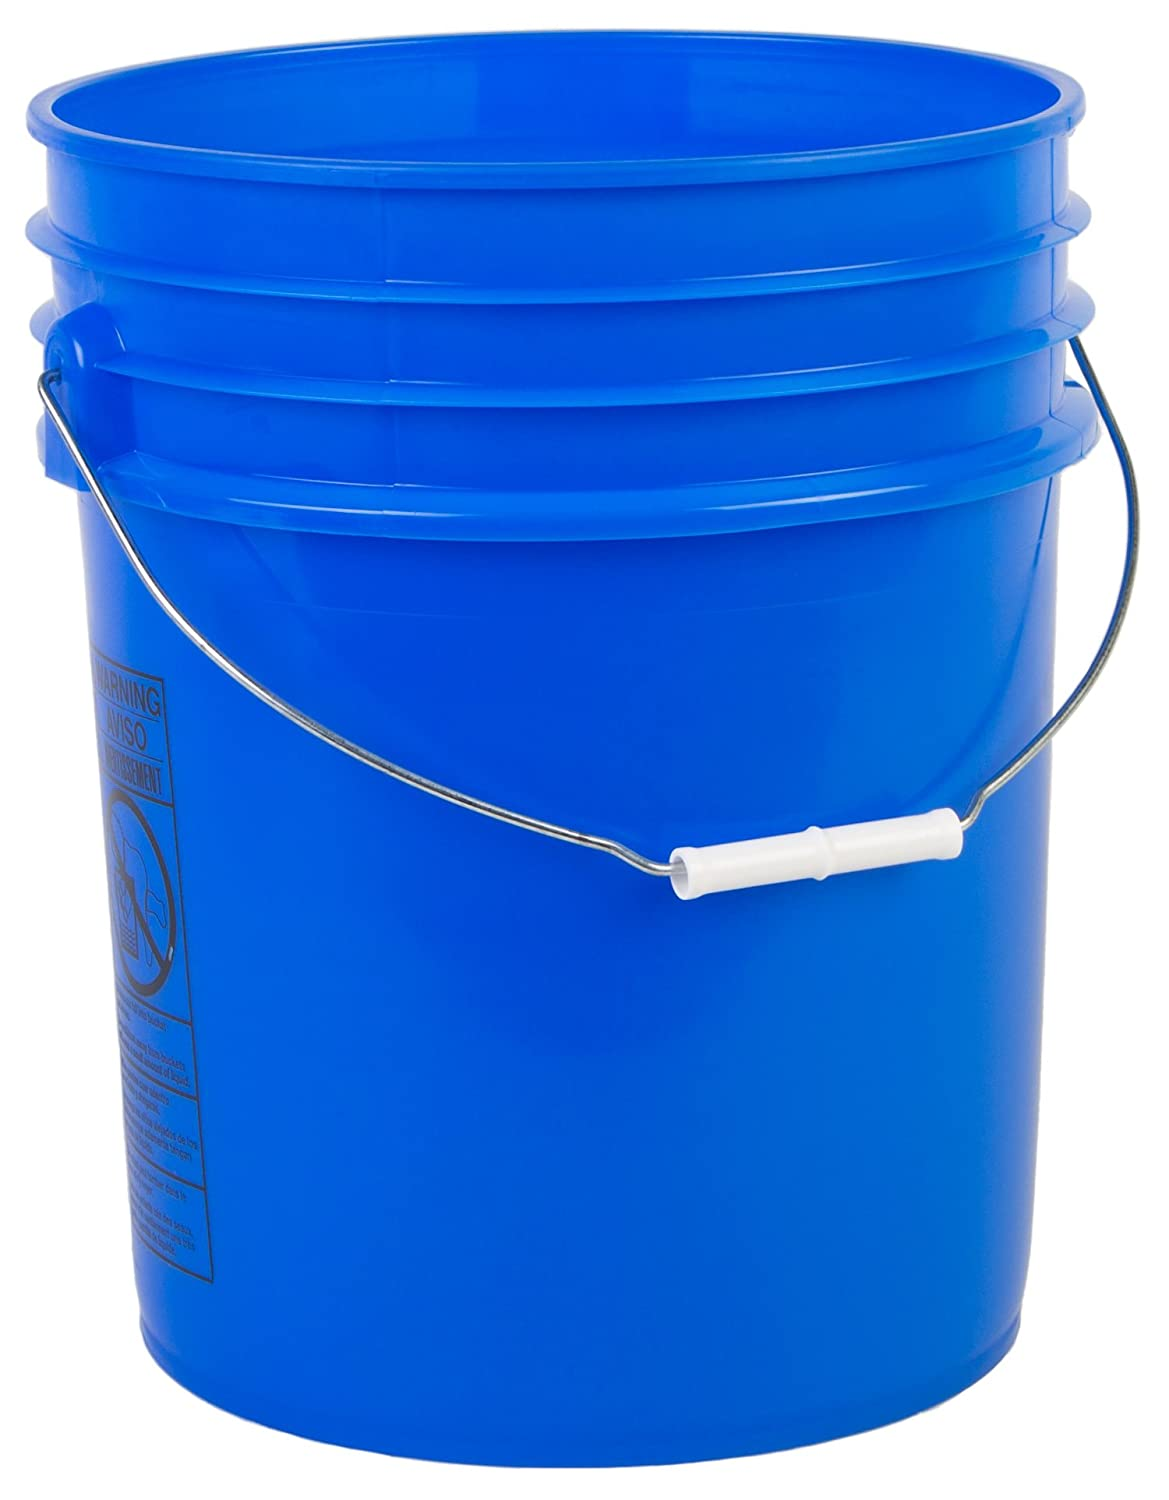 Hudson Exchange Premium 5 Gallon Bucket, HDPE, Blue